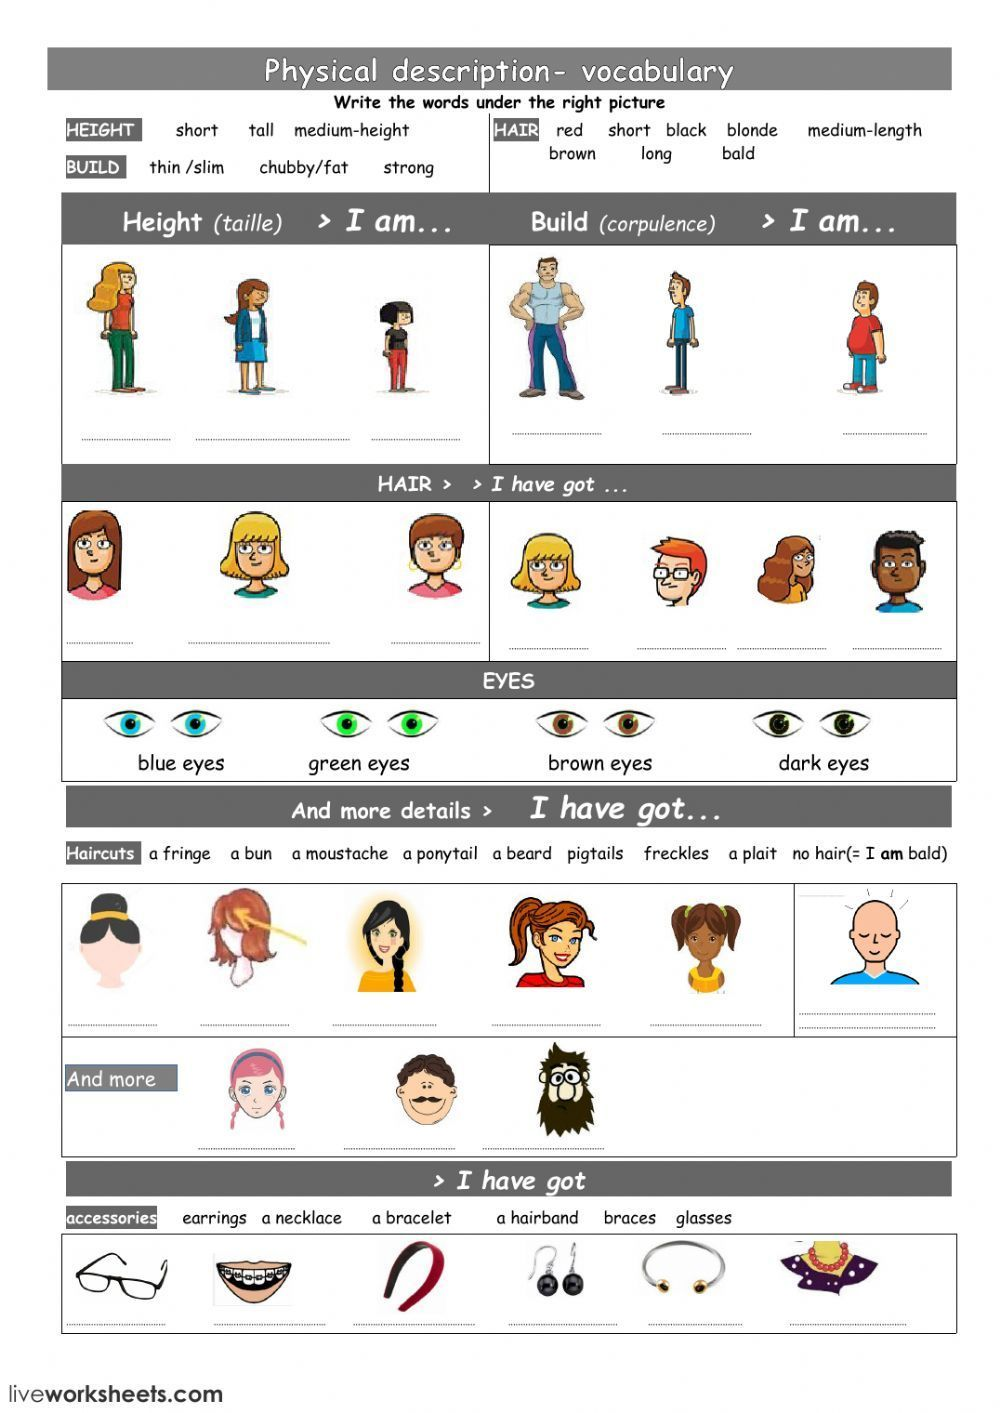 Physical appearance vocabulary Interactive worksheet